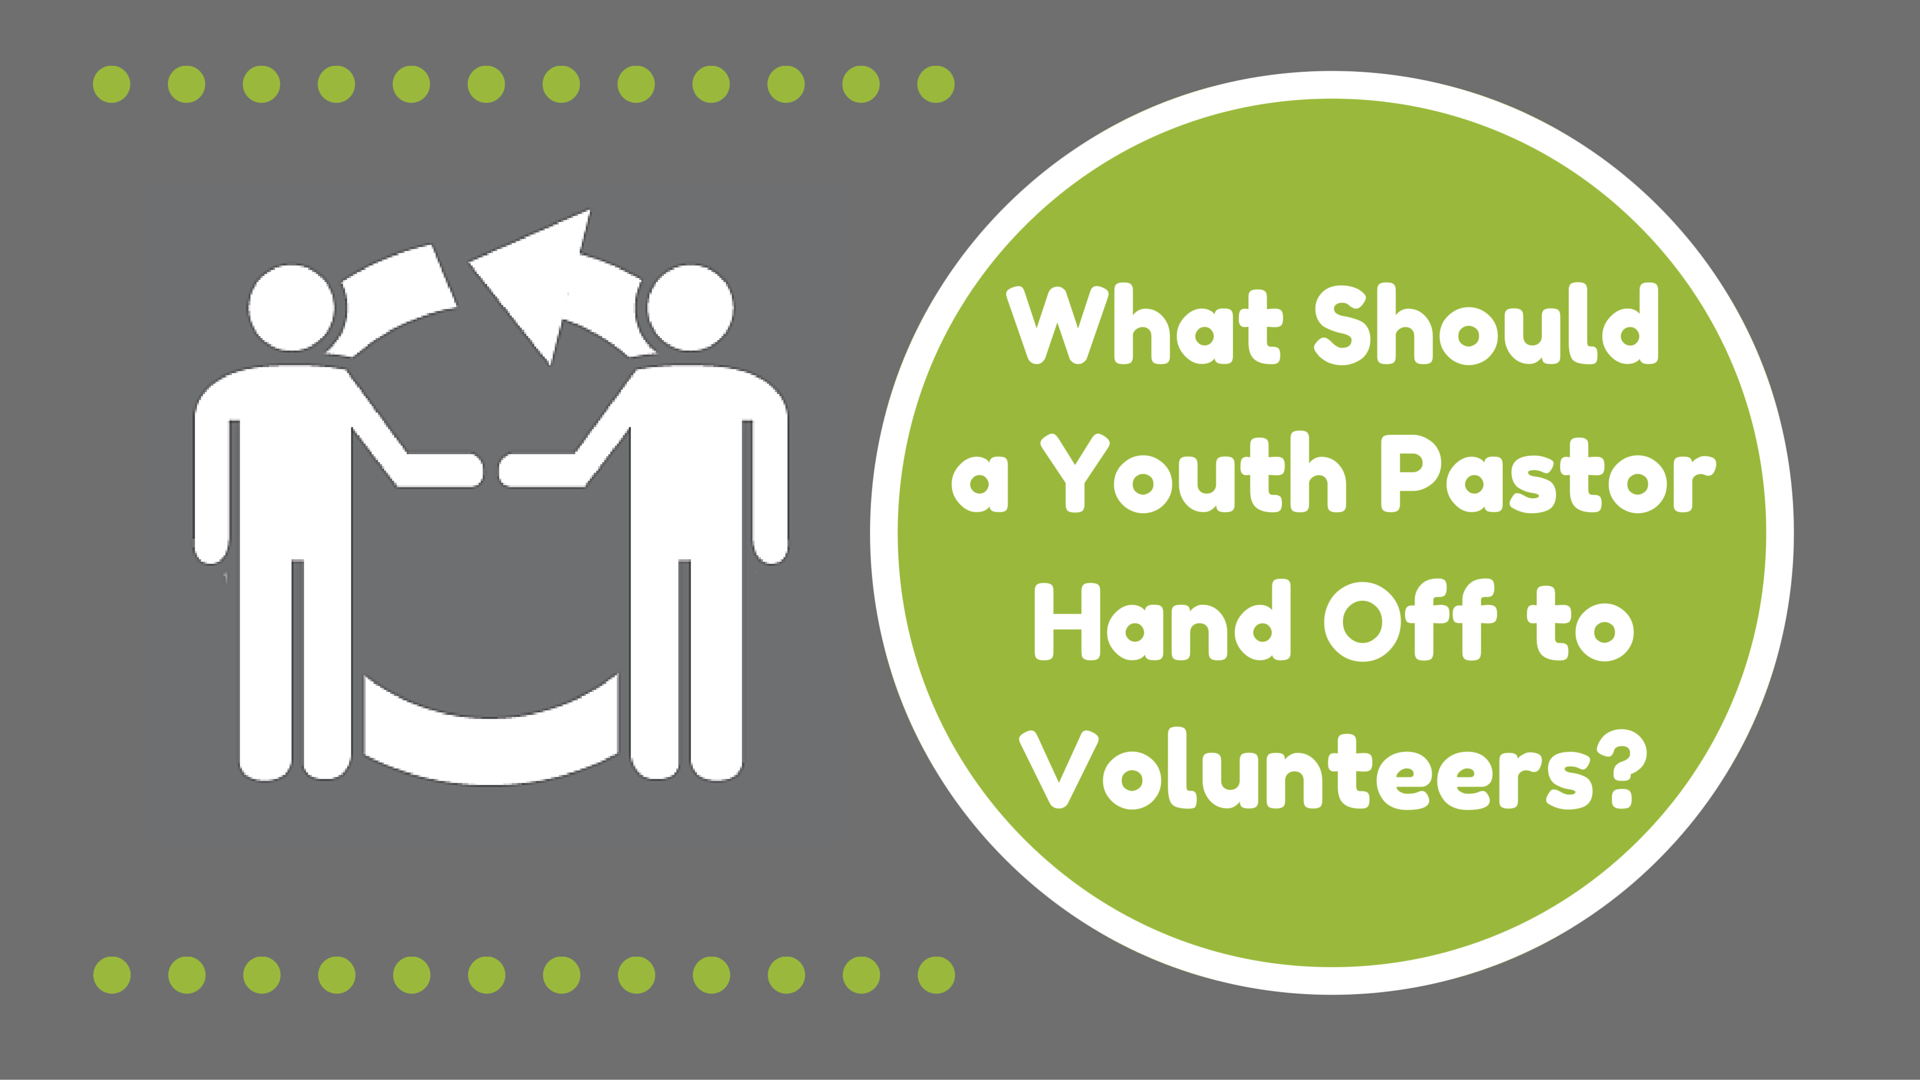 What Should a Youth Pastor Hand Off to Volunteers?